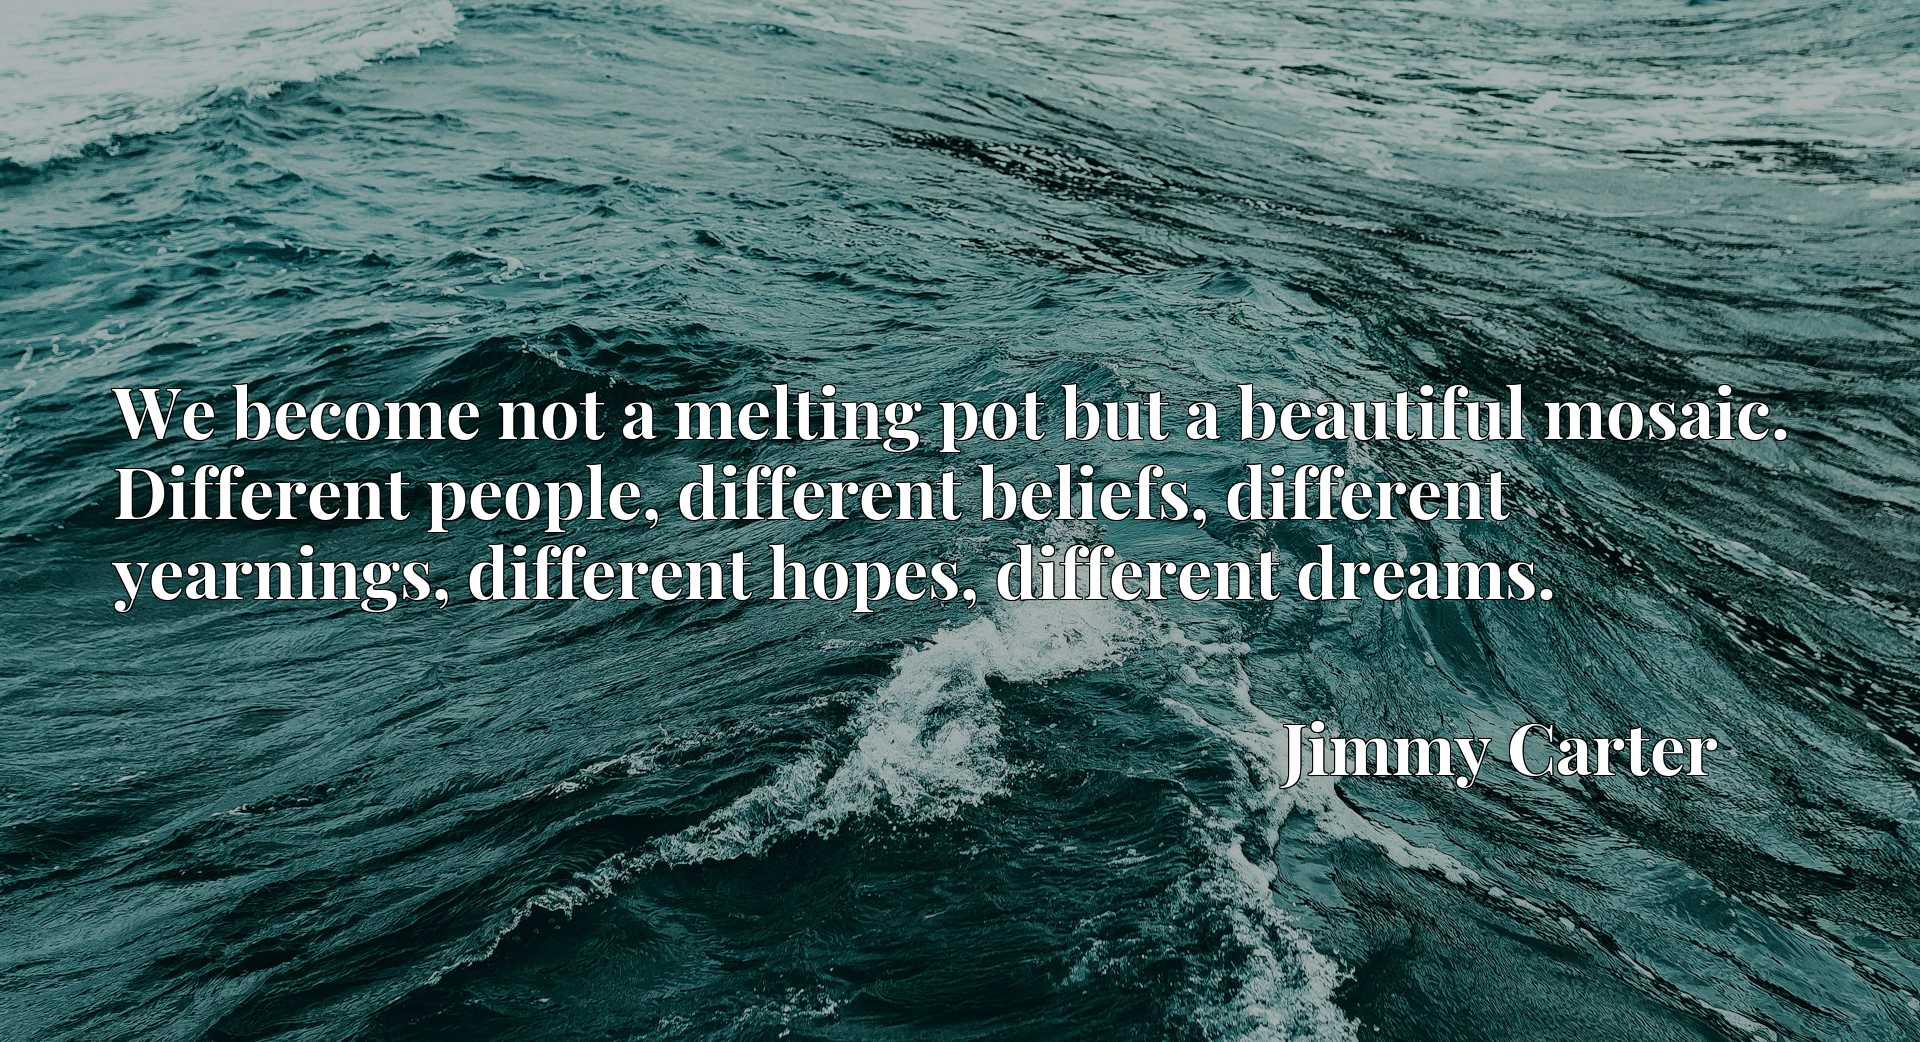 We become not a melting pot but a beautiful mosaic. Different people, different beliefs, different yearnings, different hopes, different dreams.